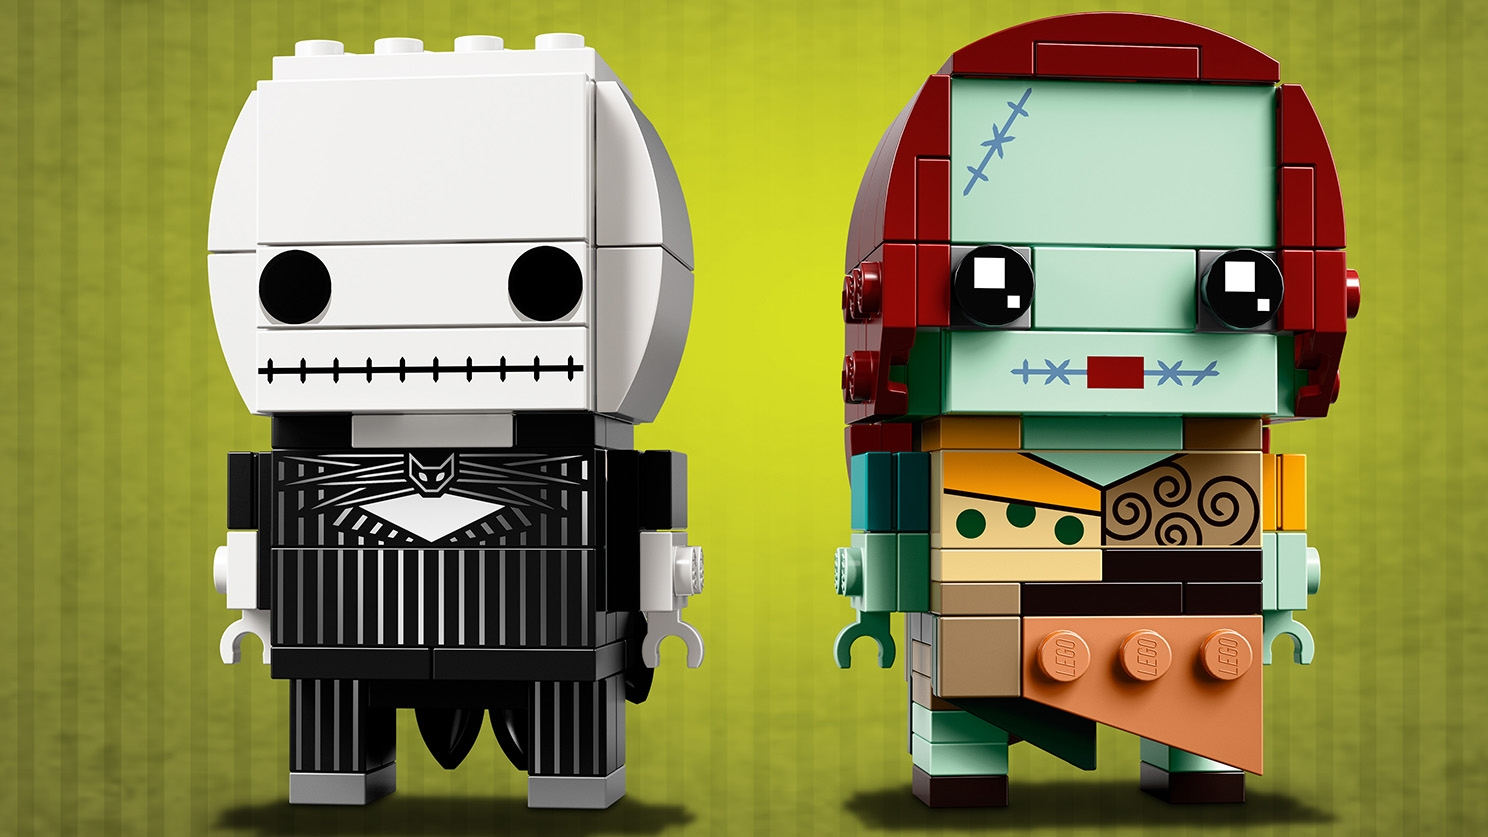 LEGO Brickheadz - 41630 Jack Skellington & Sally - Build LEGO Brickheadz versions of the pumpkin king Jack Skellington and his sweetheart Sally from the movie The Nightmare Before Christmas.